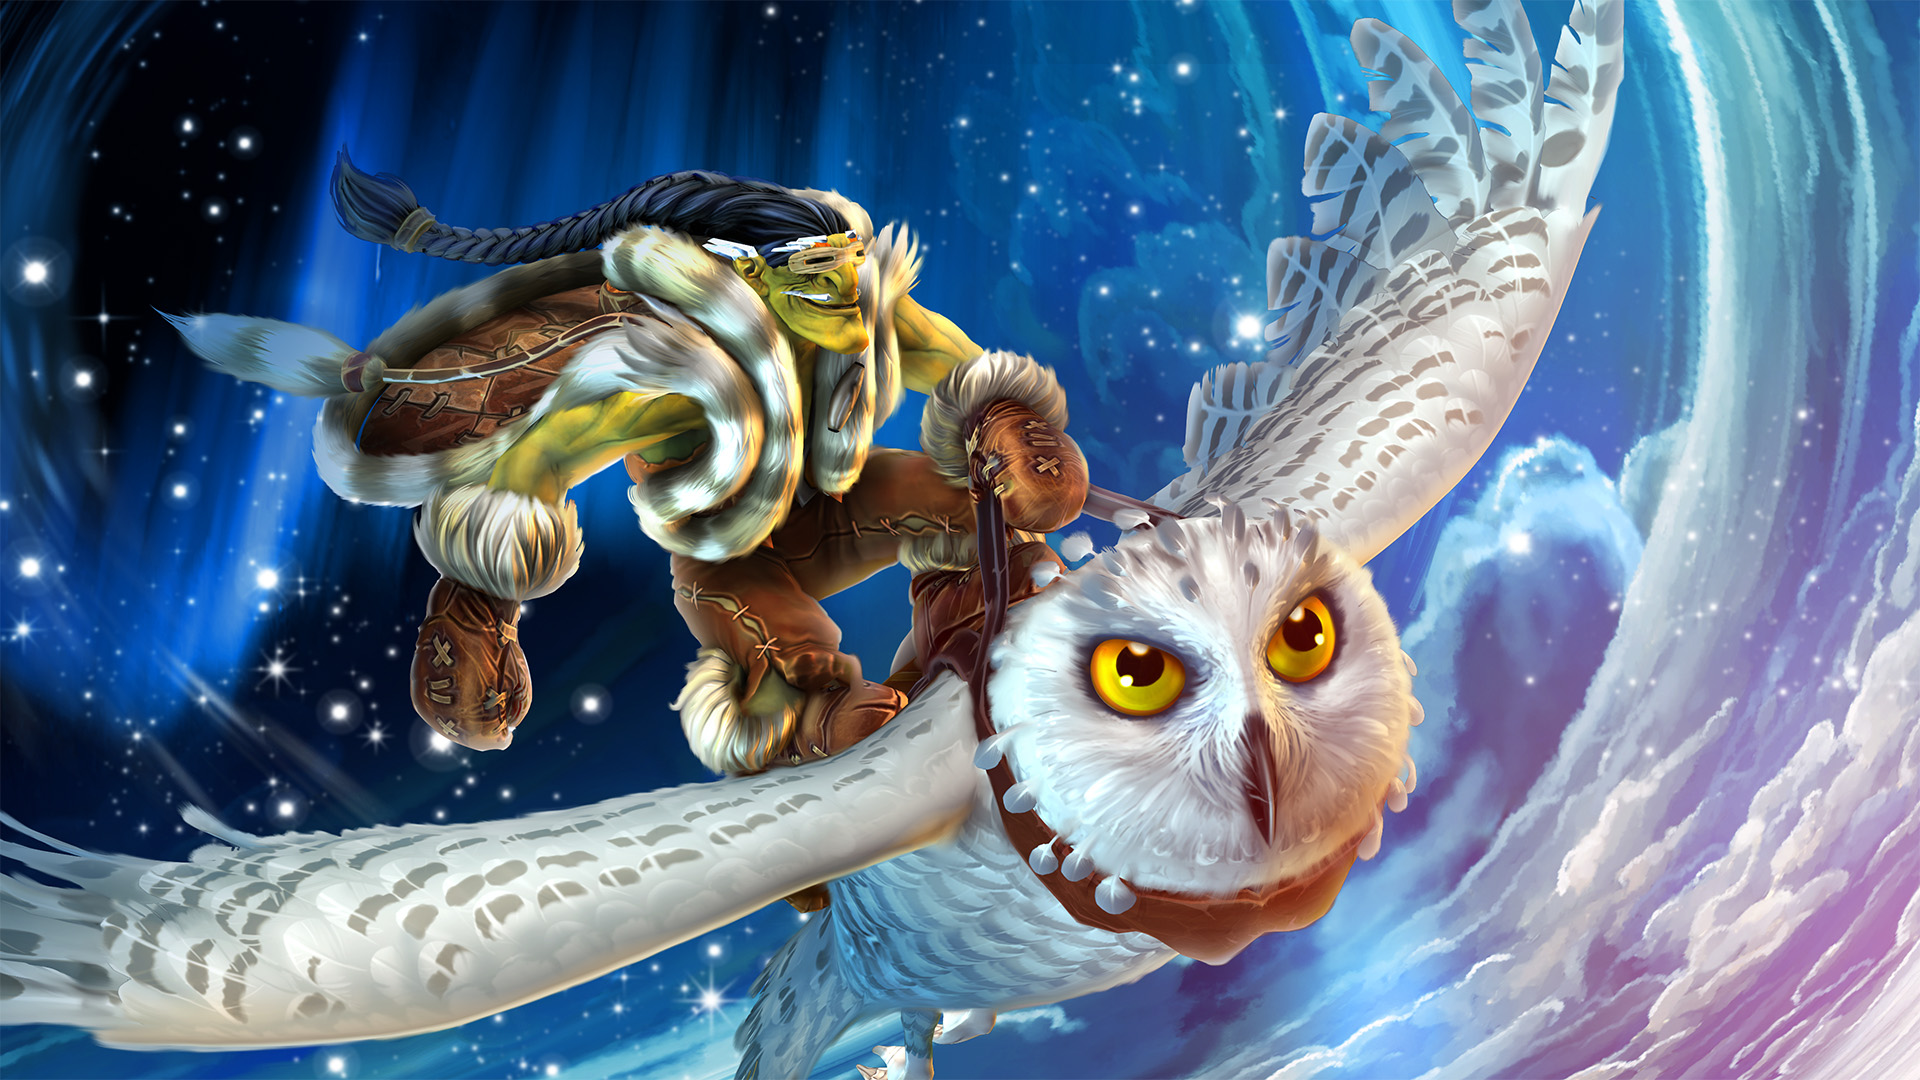 Owl Rider loading screen frostivus 2017 Dota.jpg